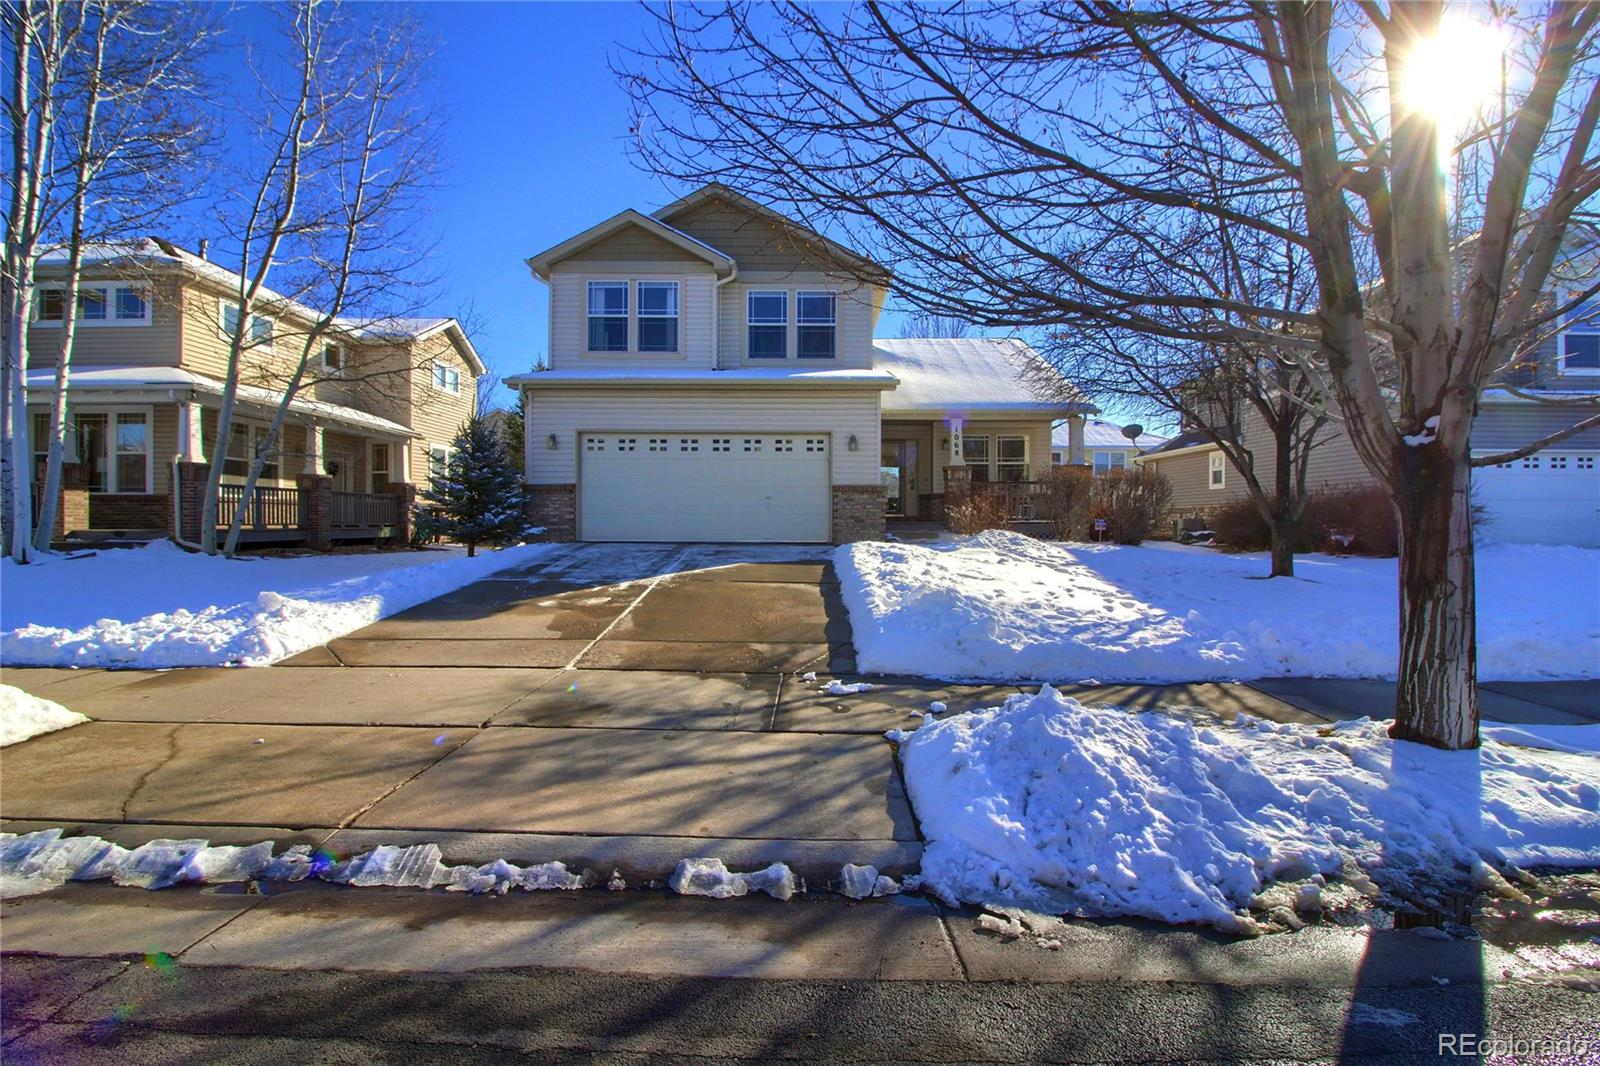 MLS# 3161208 - 34 - 1068 W 135th Court, Westminster, CO 80234